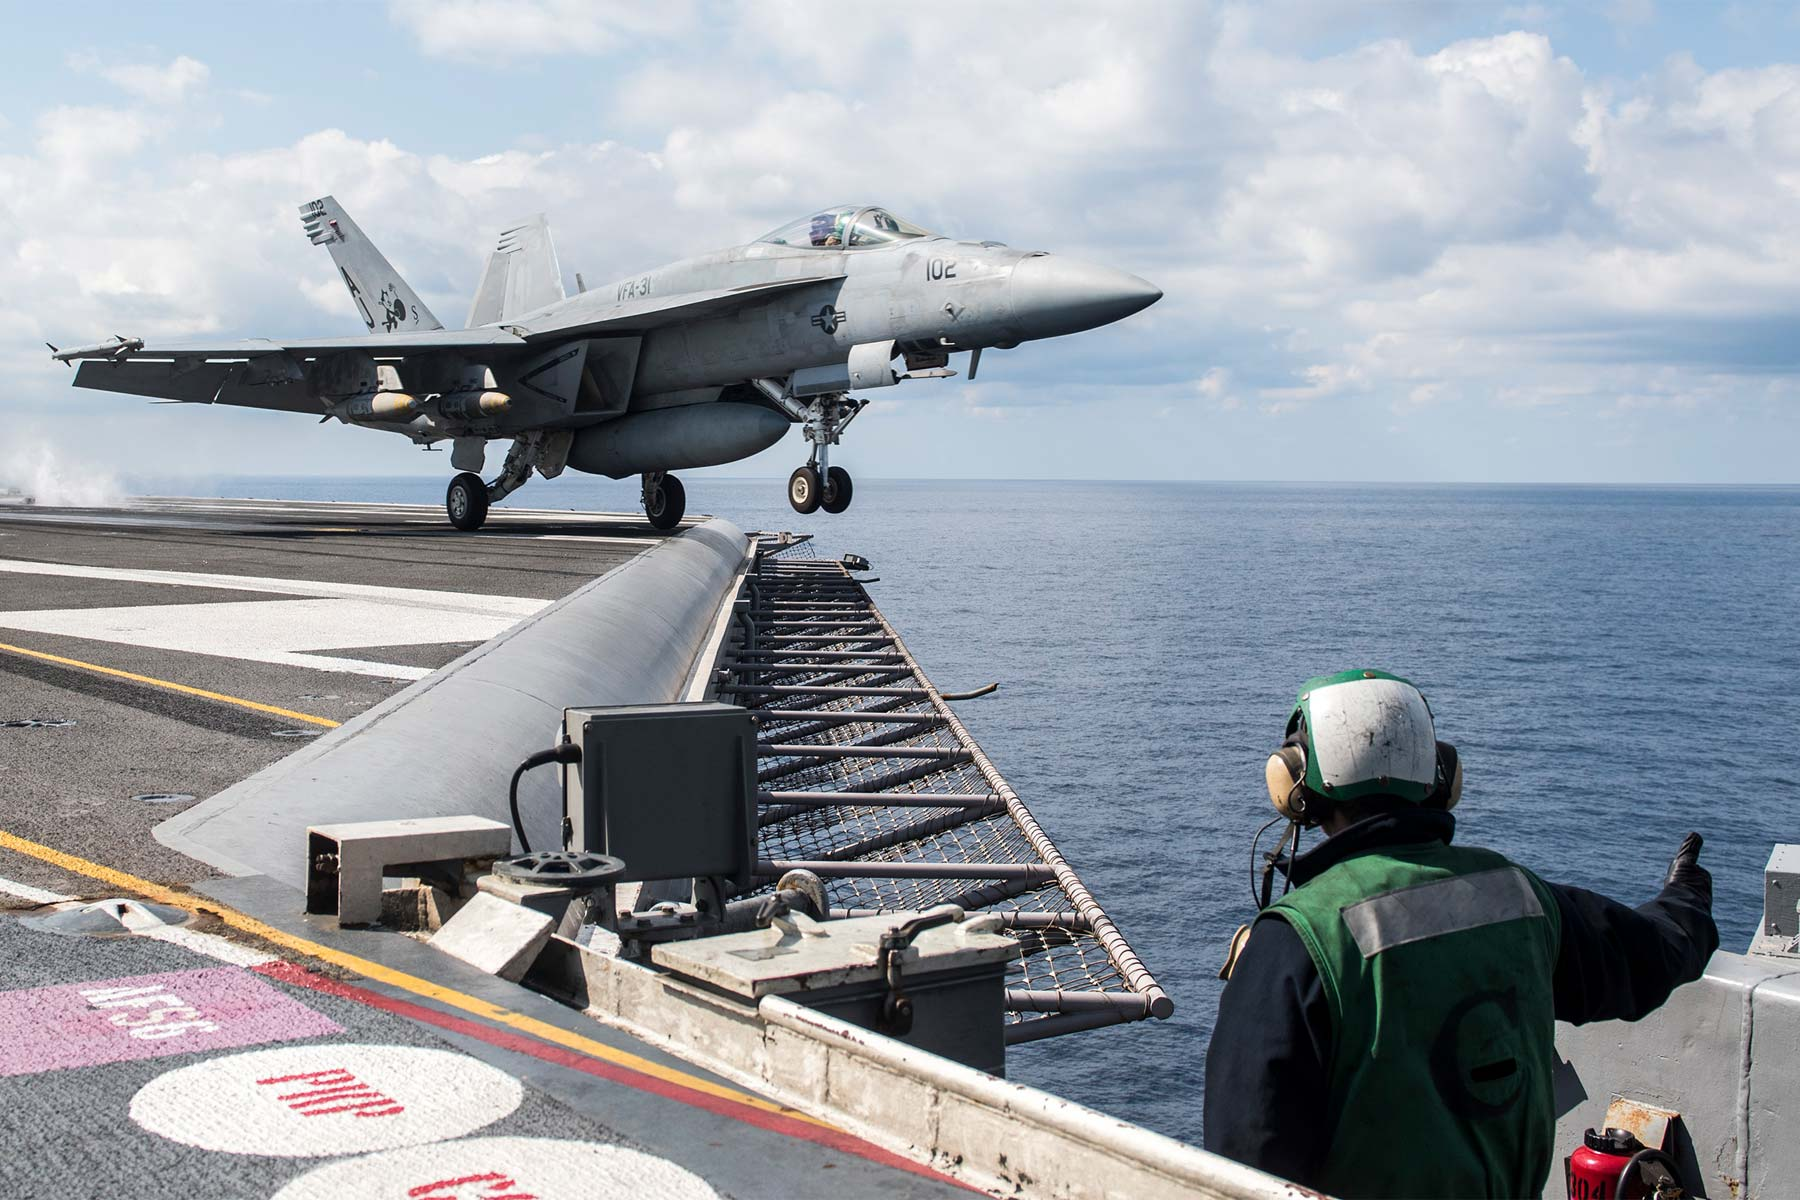 My Ford Benefits >> Report: Navy Pilot Breaks Silence About Shooting Down ...